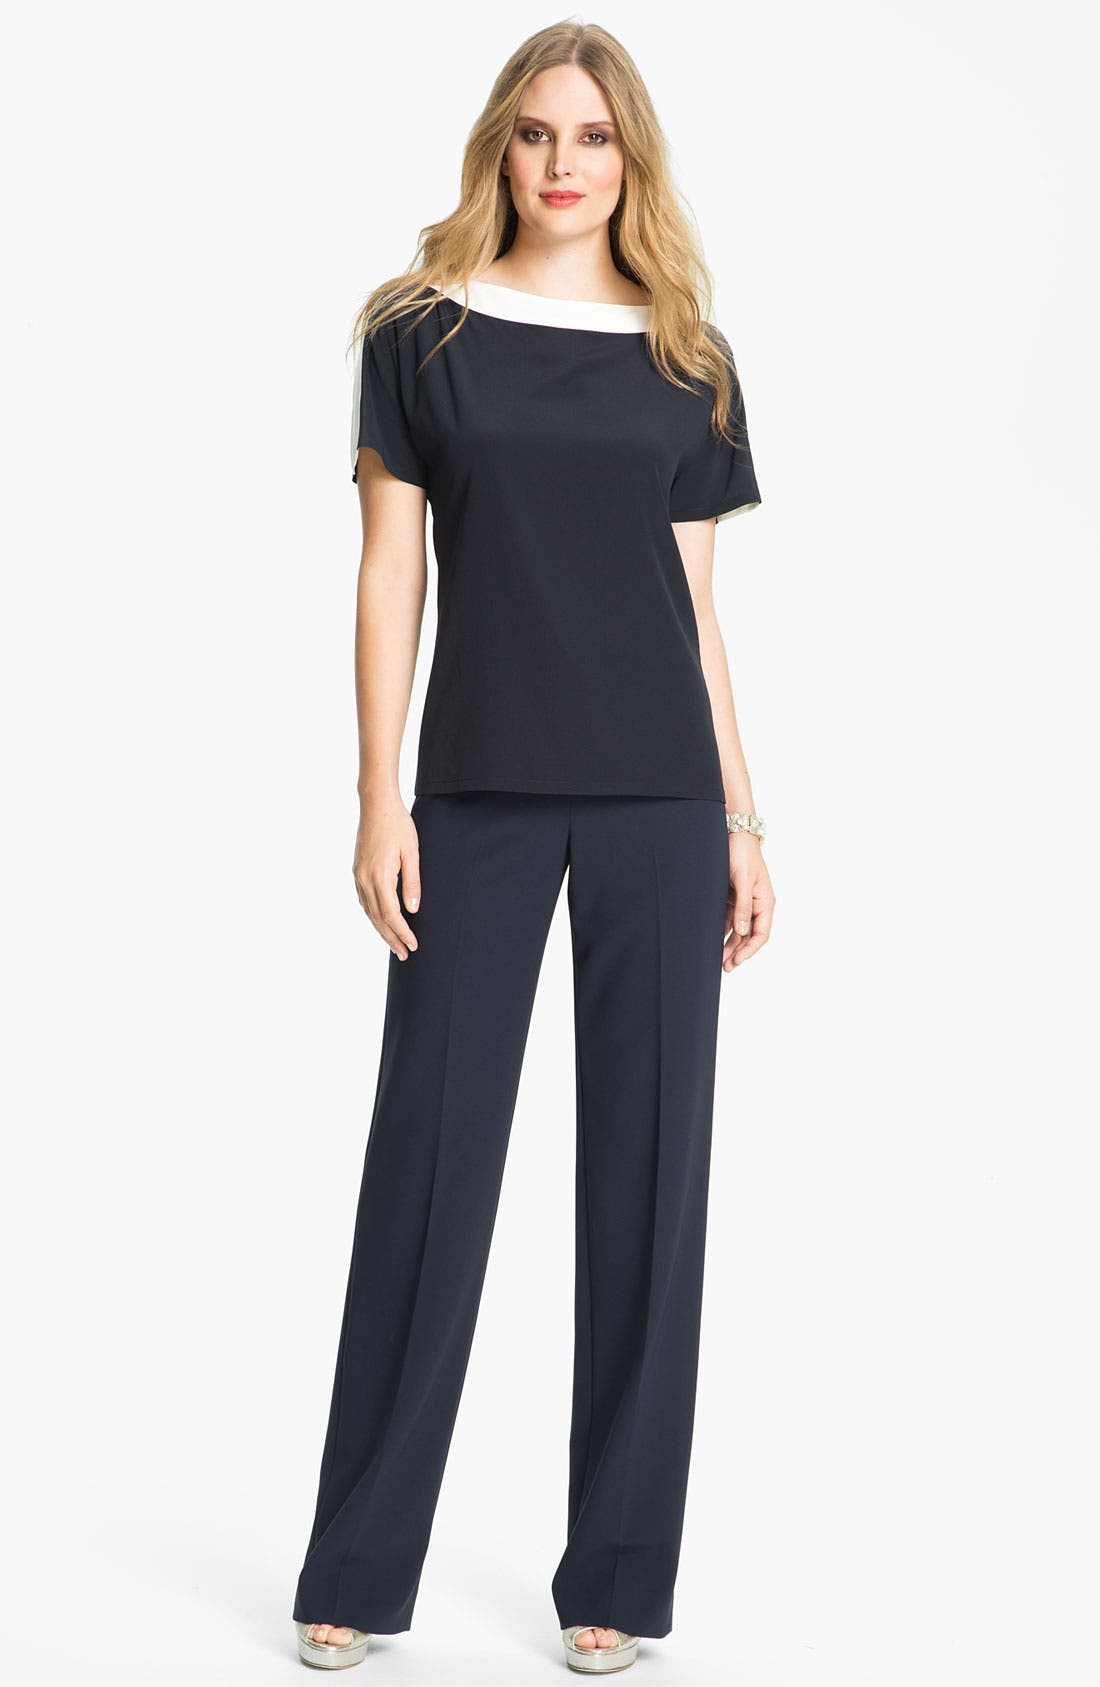 Alternate Image 1 Selected - St. John Collection 'Diana' Straight Leg Crepe Marocain Pants